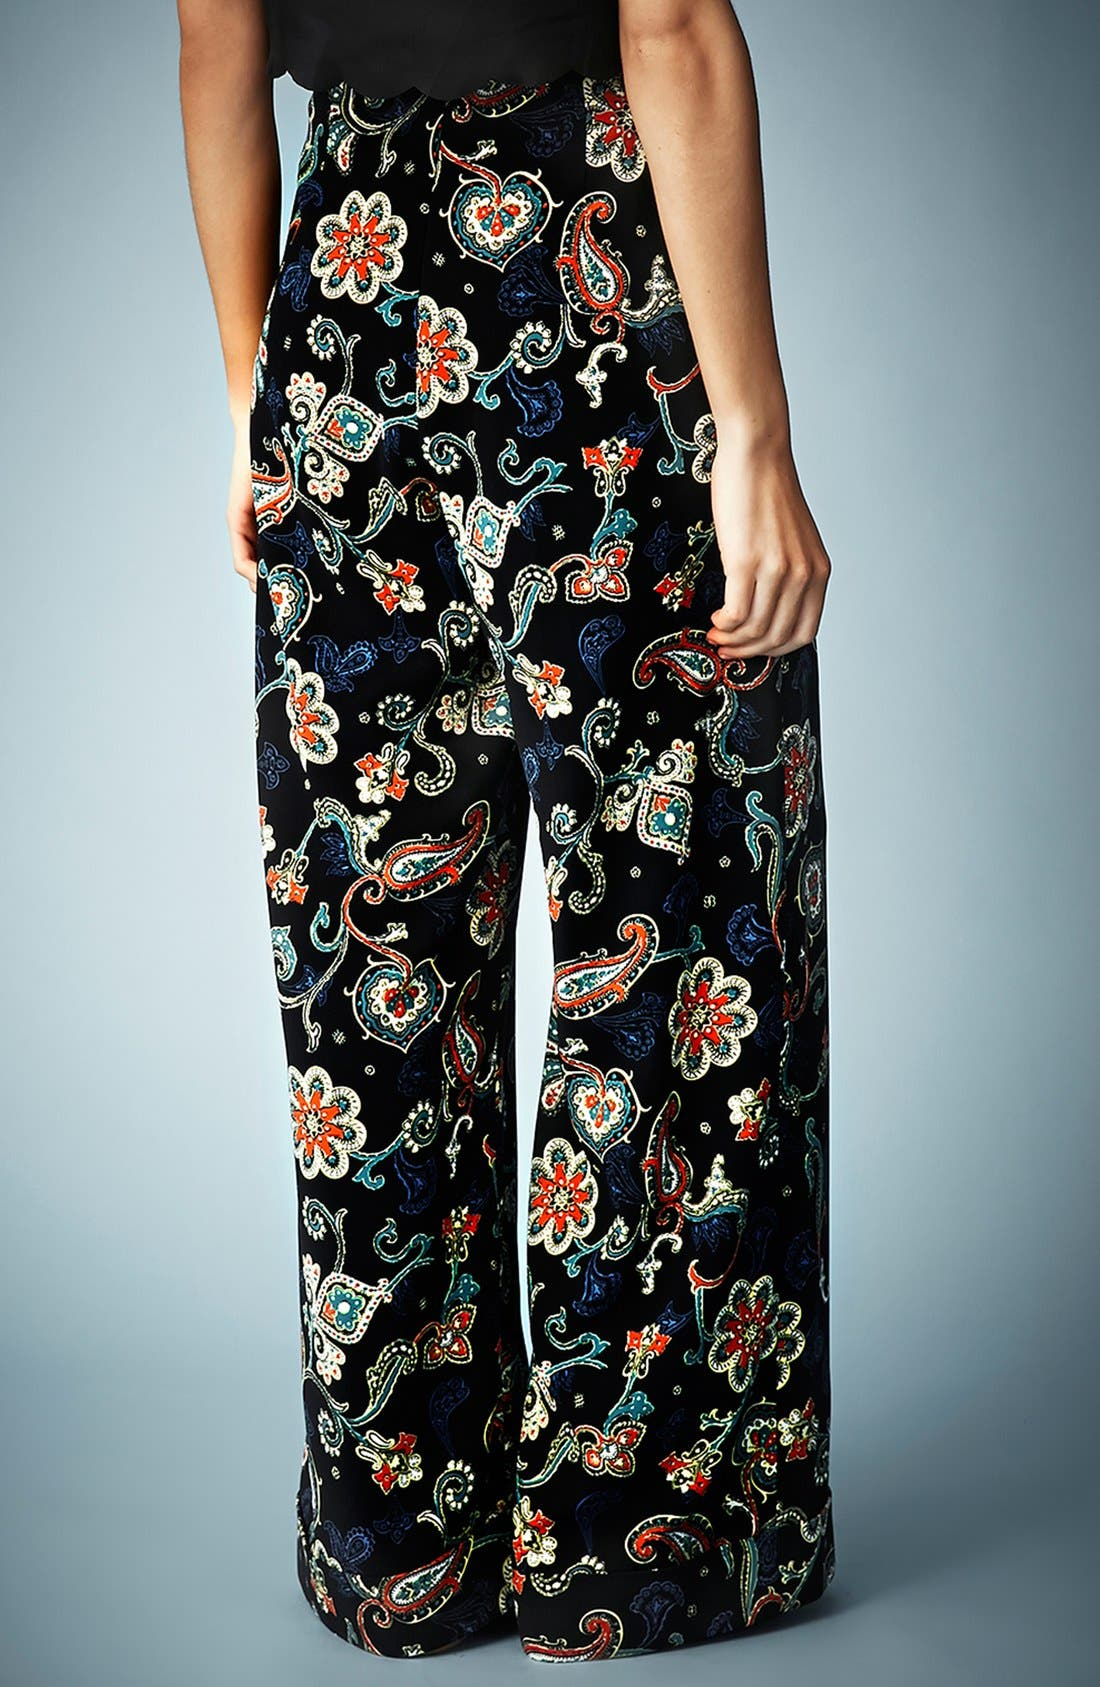 Kate Moss for Topshop Paisley Wide Leg Pants,                             Alternate thumbnail 3, color,                             001